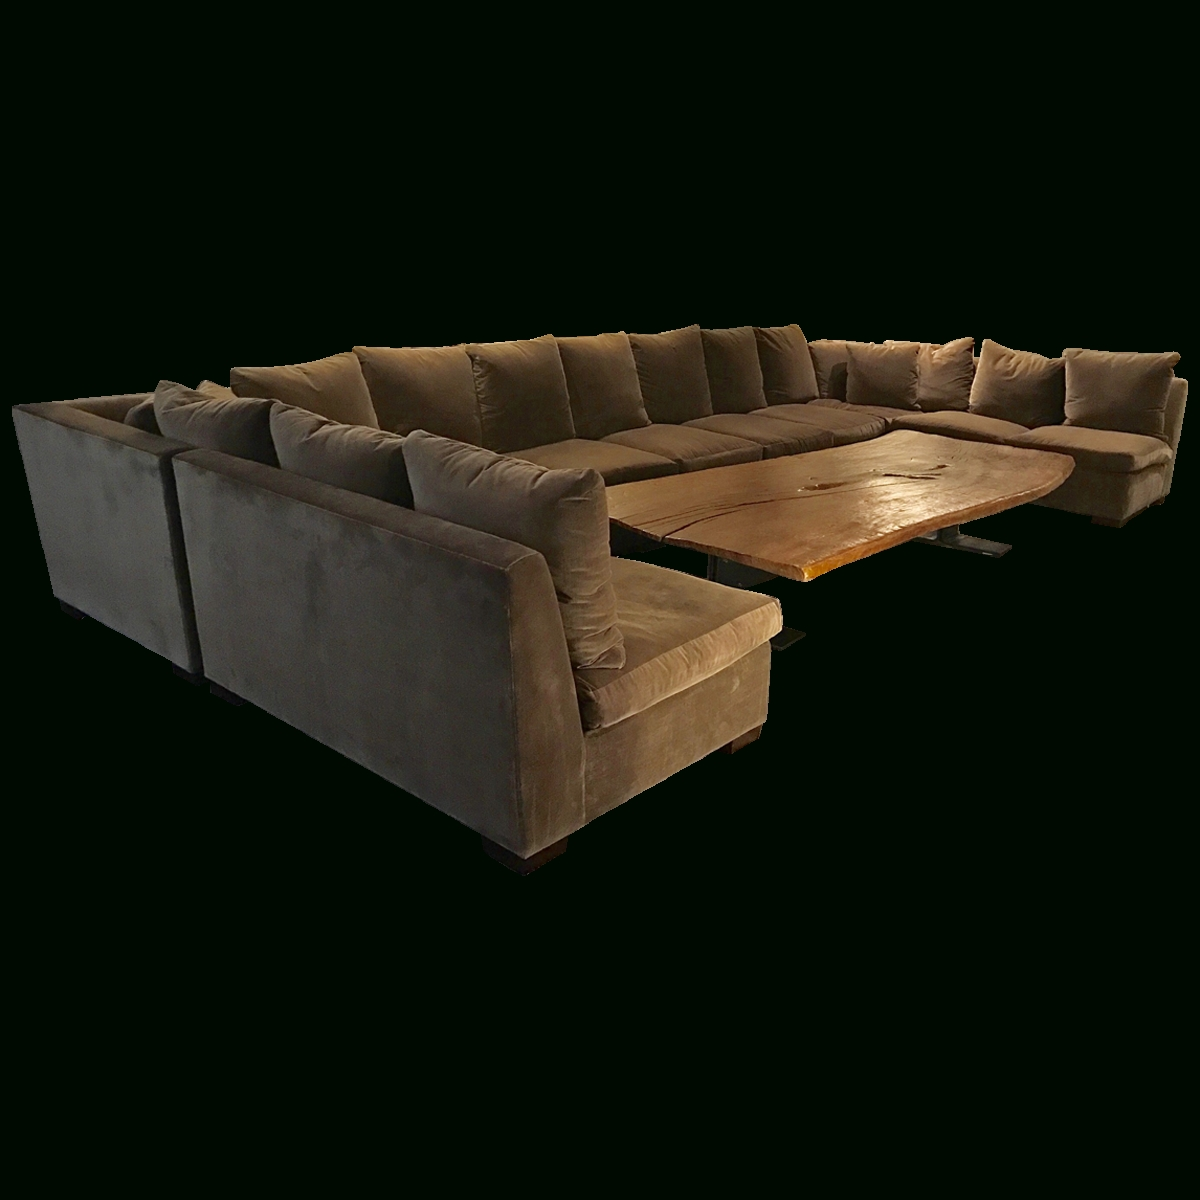 Viyet - Designer Furniture - Seating - Ralph Lauren Velvet Armless with Armless Sectional Sofa (Image 27 of 30)